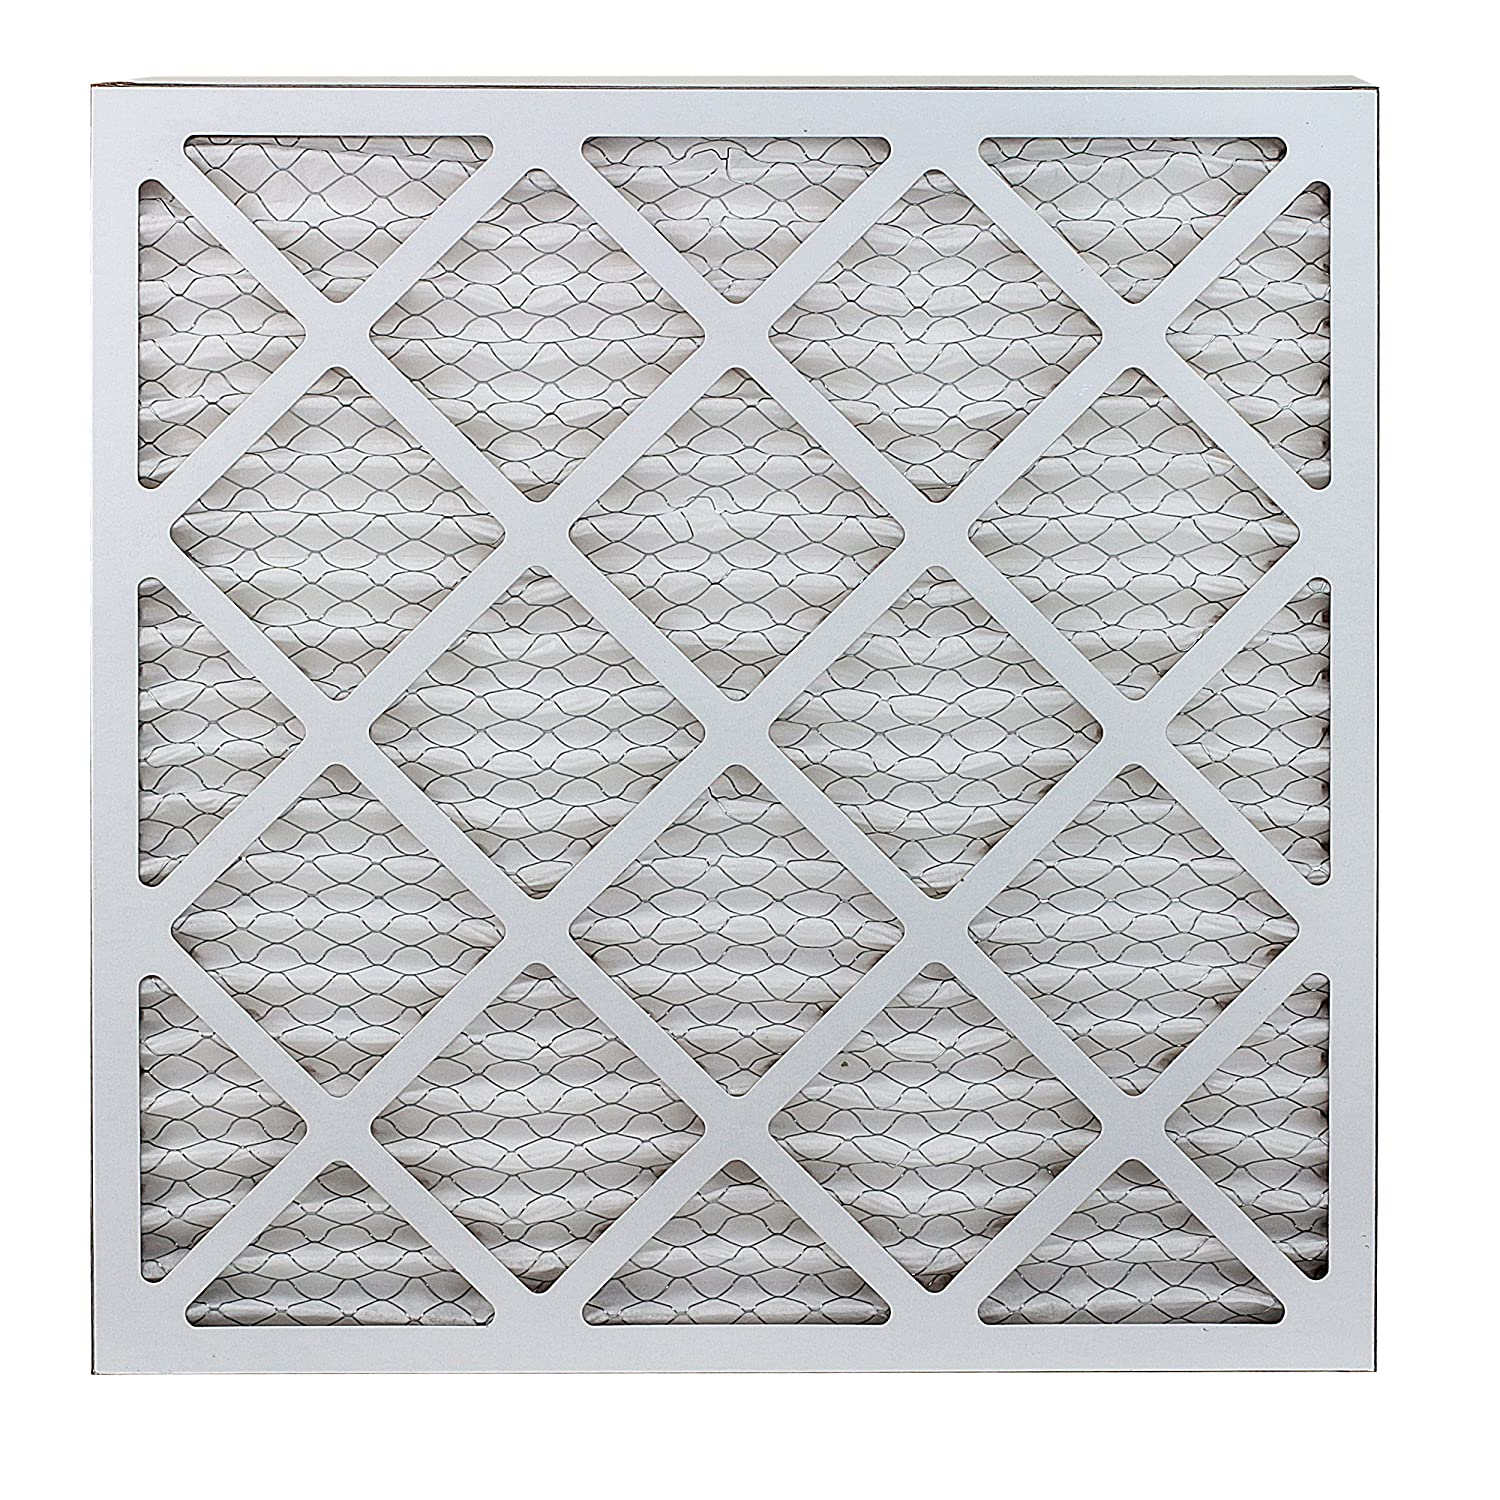 Pack of 2 Filters FilterBuy 18x20x1 MERV 8 Pleated AC Furnace Air Filter, Silver 18x20x1